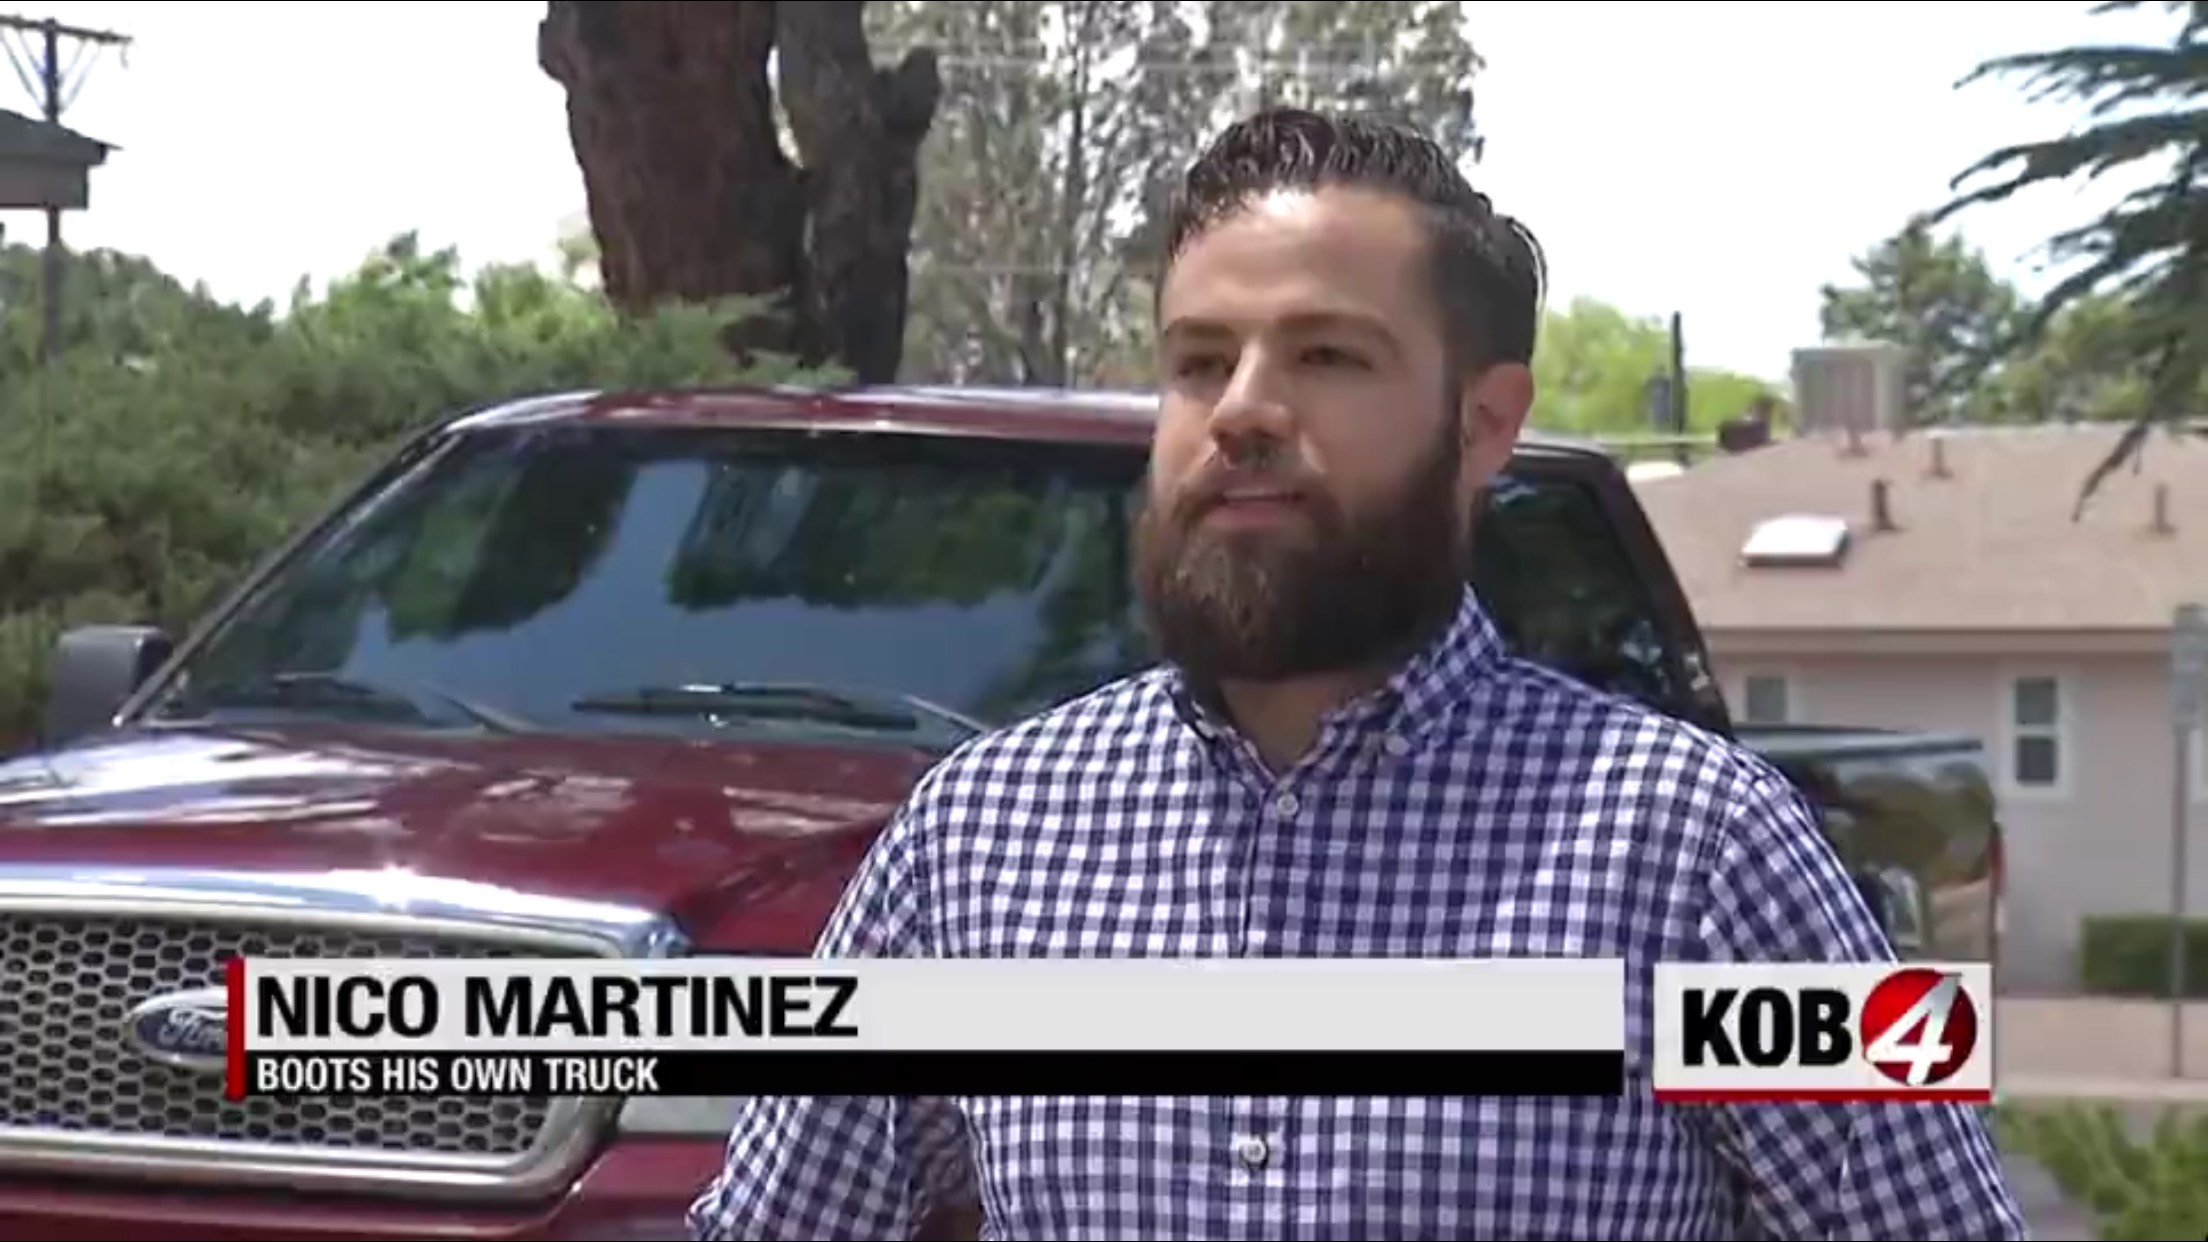 Nico Martinez: Boots His Own Truck